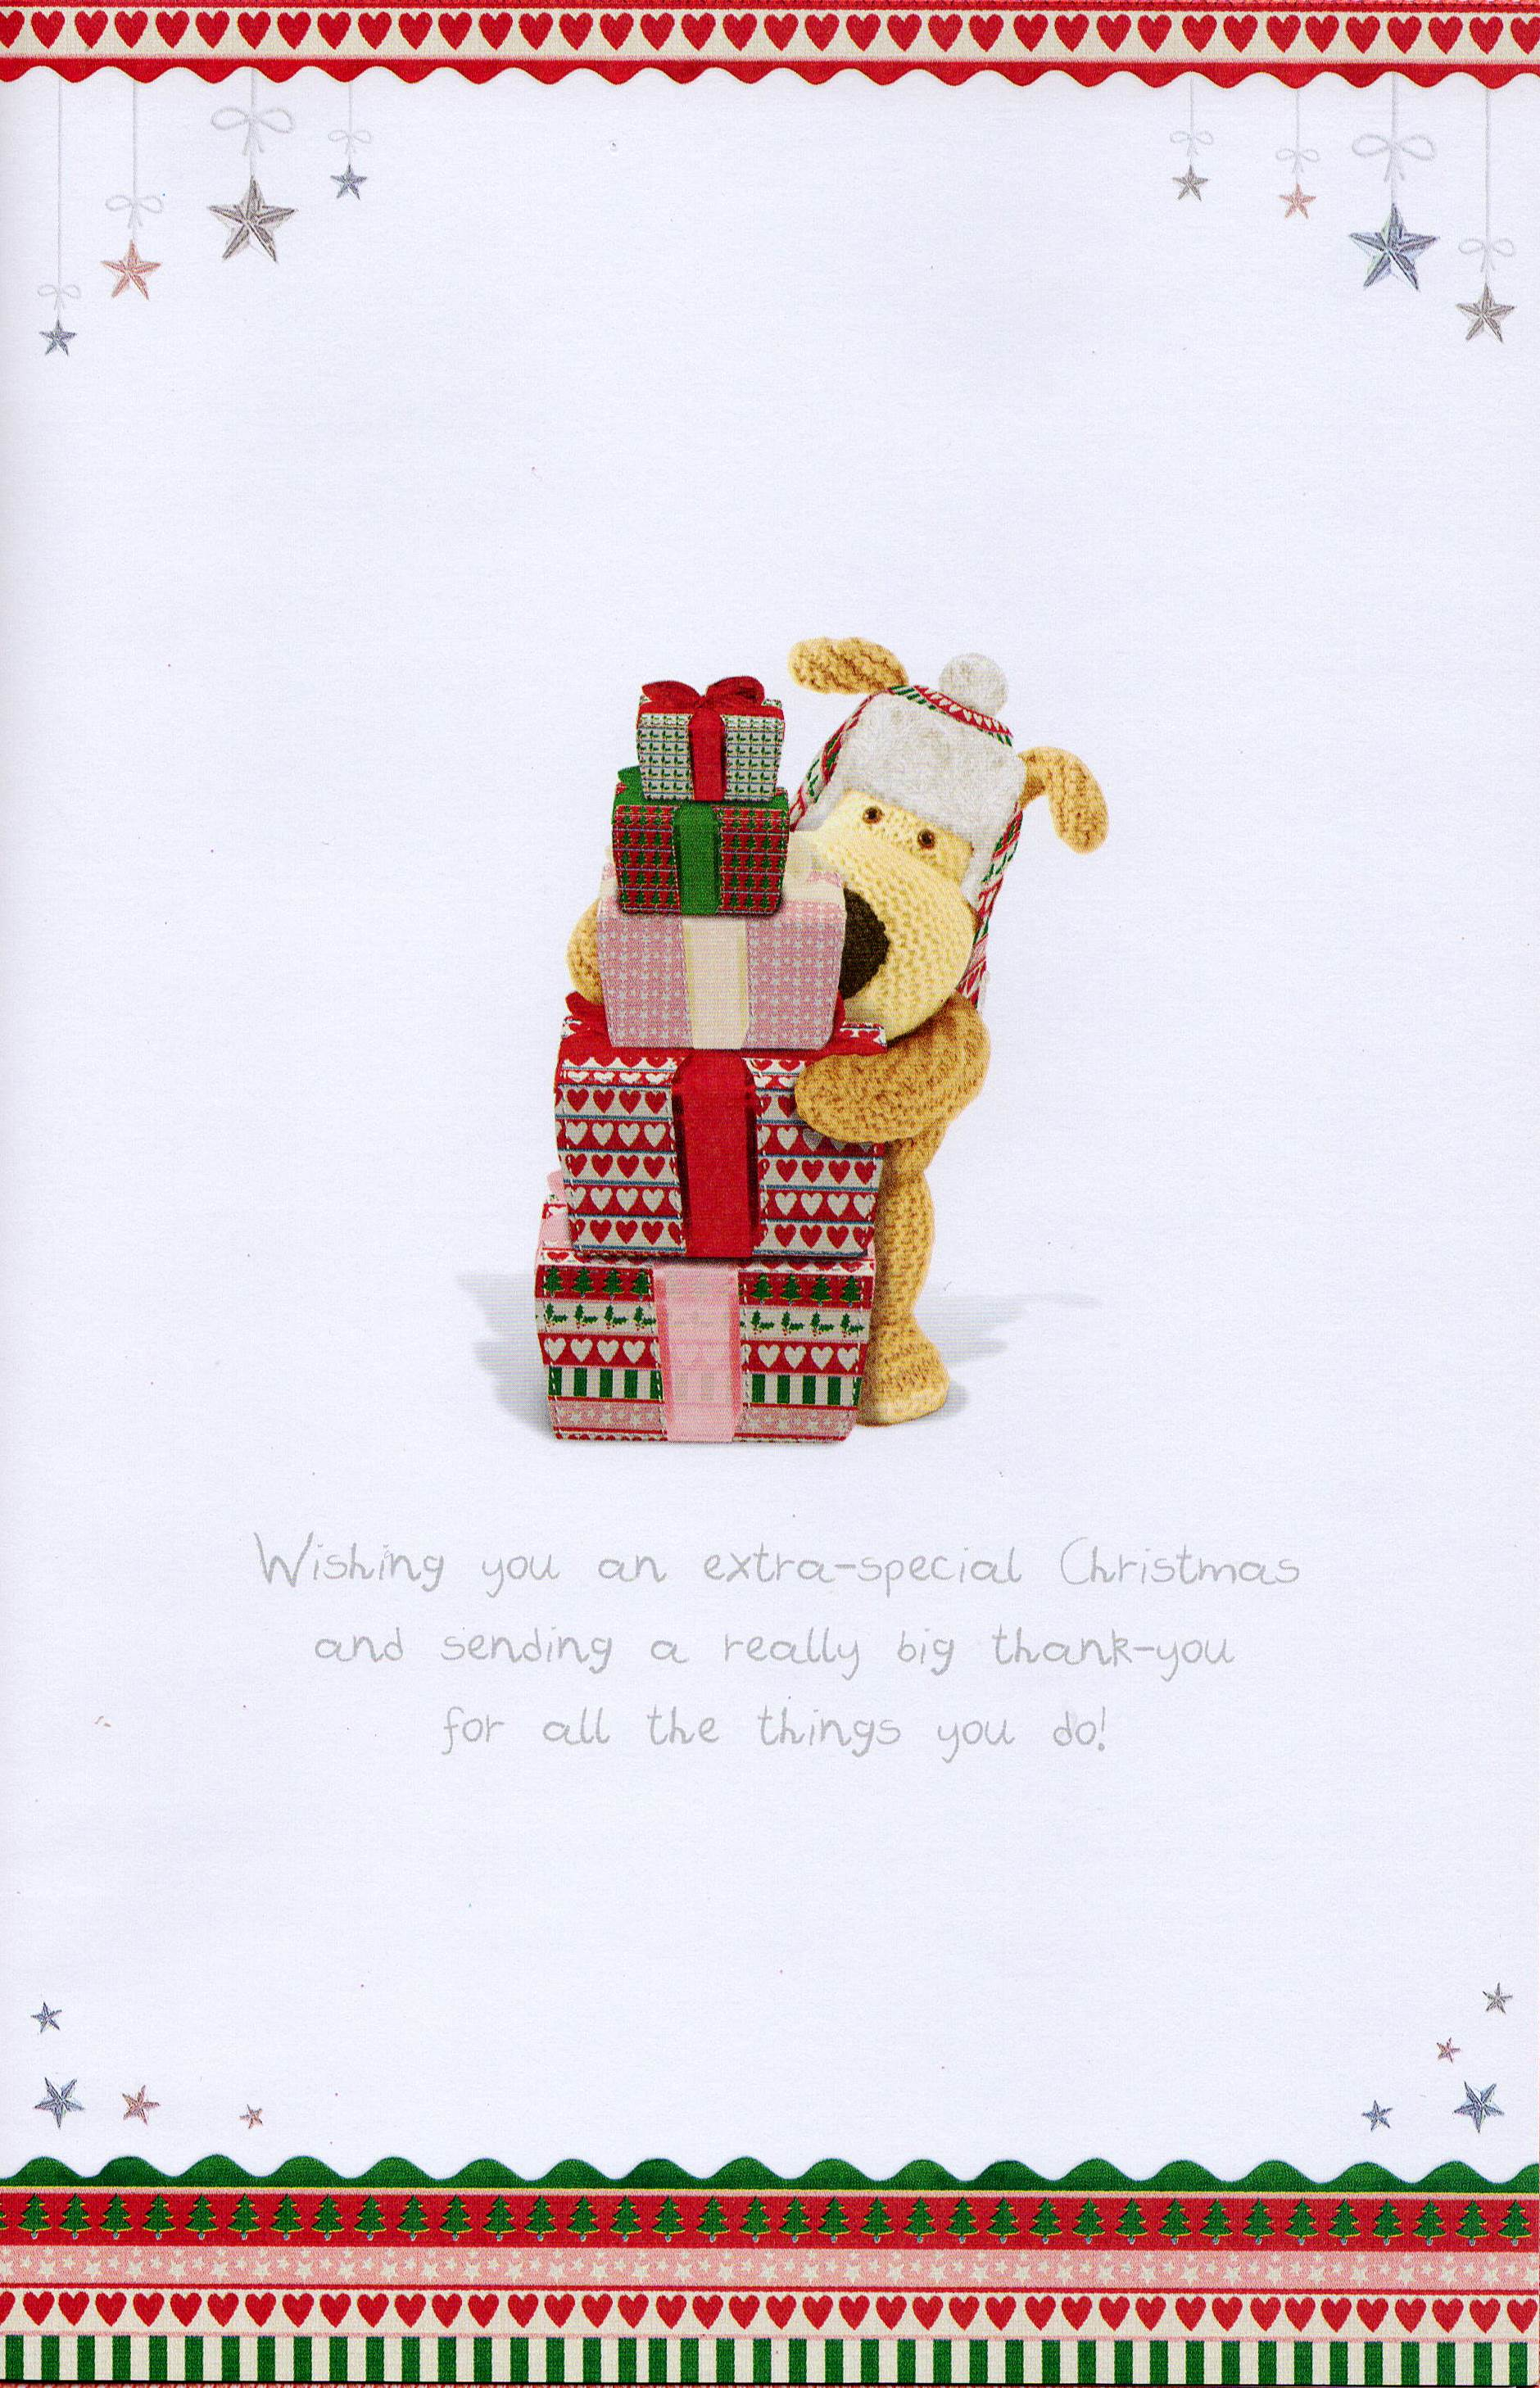 Boofle for a lovely mum at christmas card lovely xmas greeting cards sentinel boofle for a lovely mum at christmas card lovely xmas greeting cards m4hsunfo